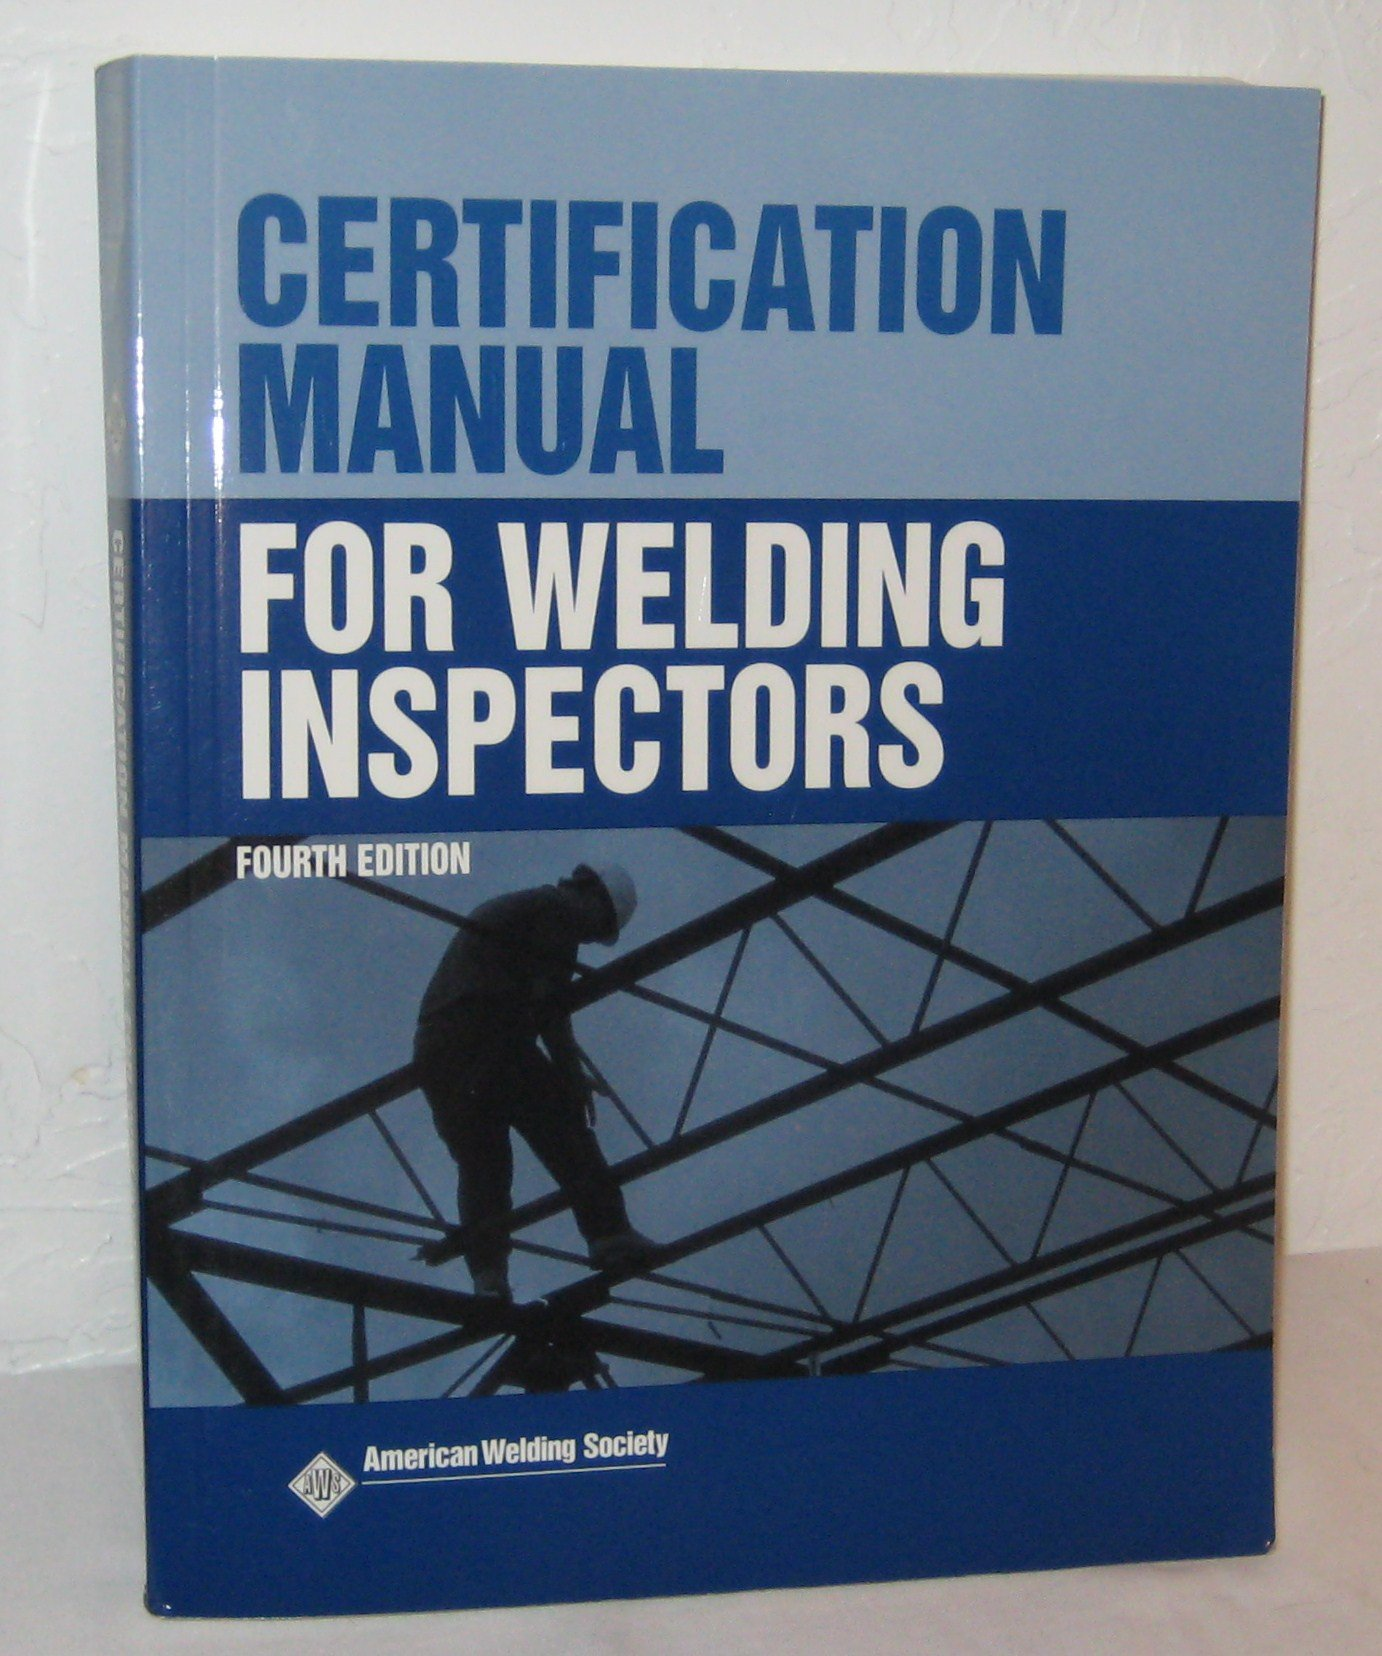 certification manual for welding inspectors hallock cowles rh amazon com welding inspection checklist manual Pipeline Welding Inspector Jobs